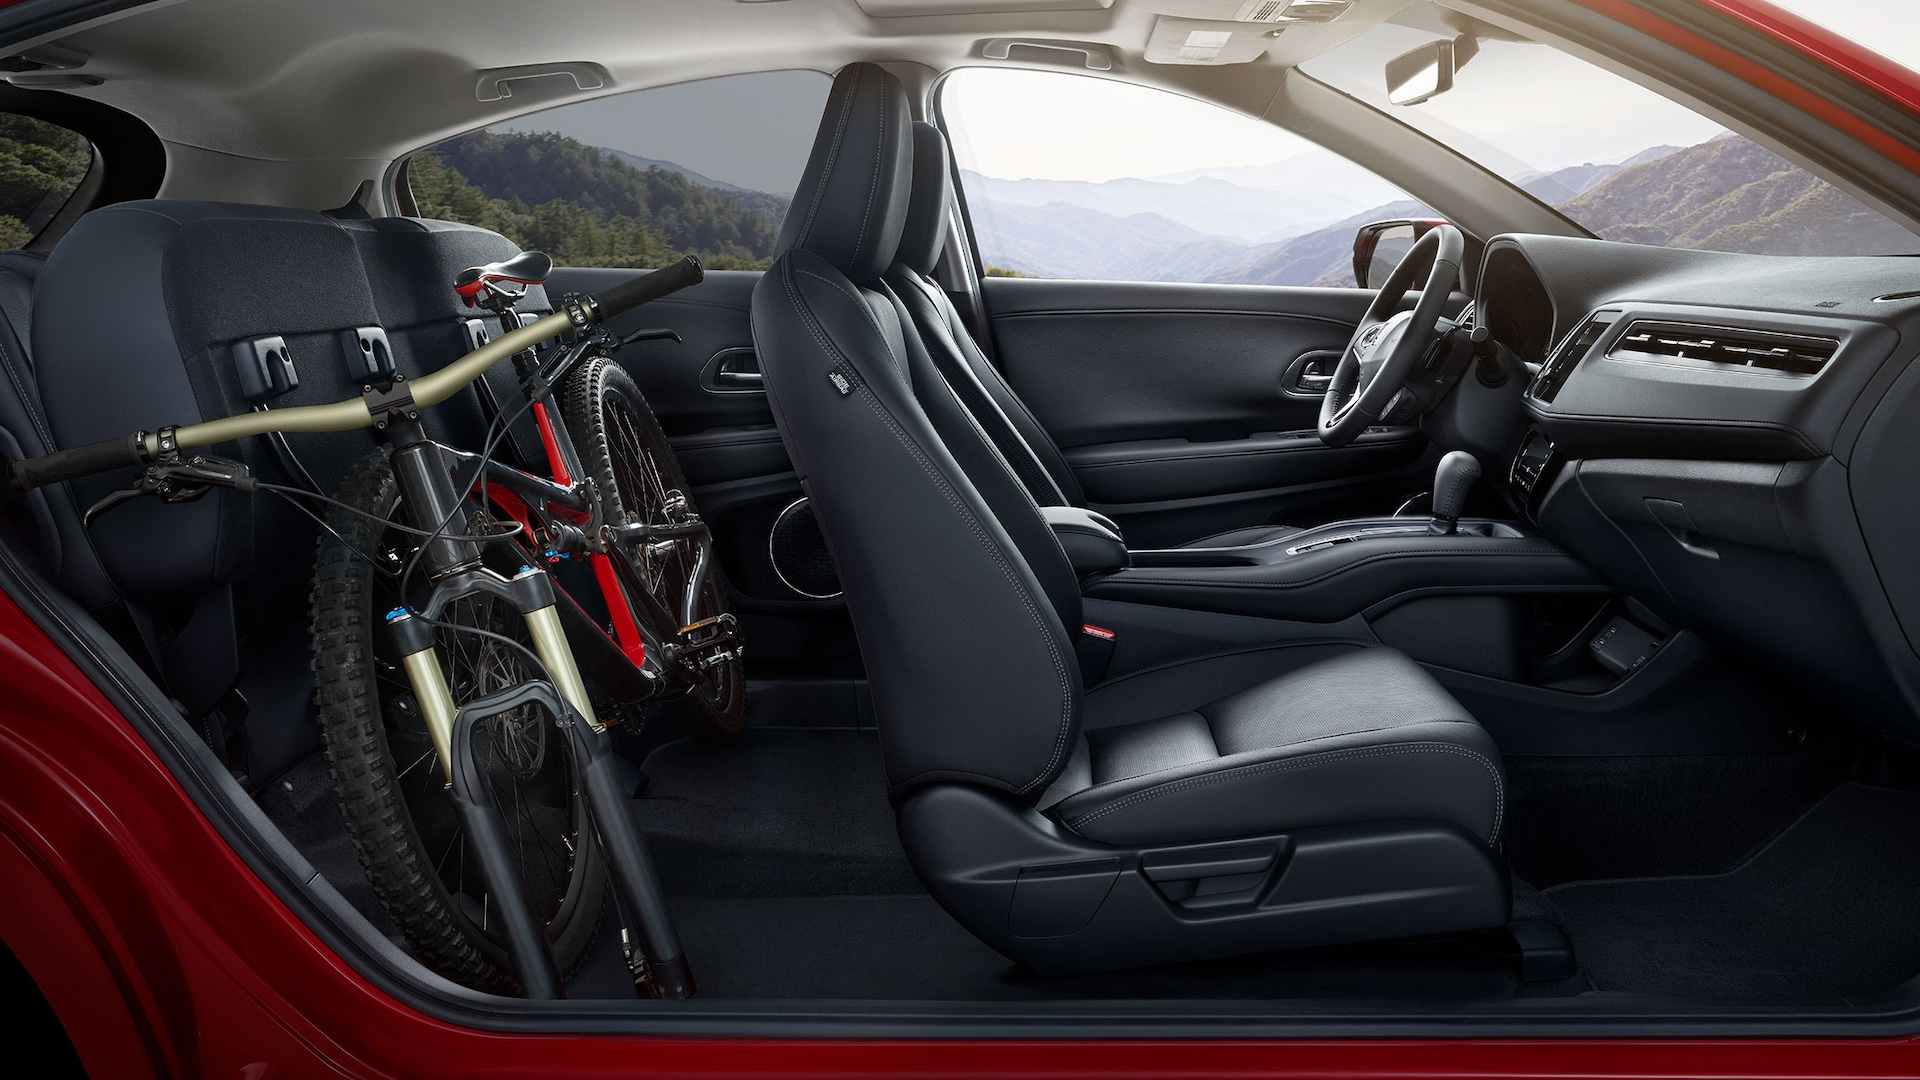 Passenger-side interior view of the 2020 Honda HR-V Touring in Black Leather, with folded rear seats, stowing a bike.